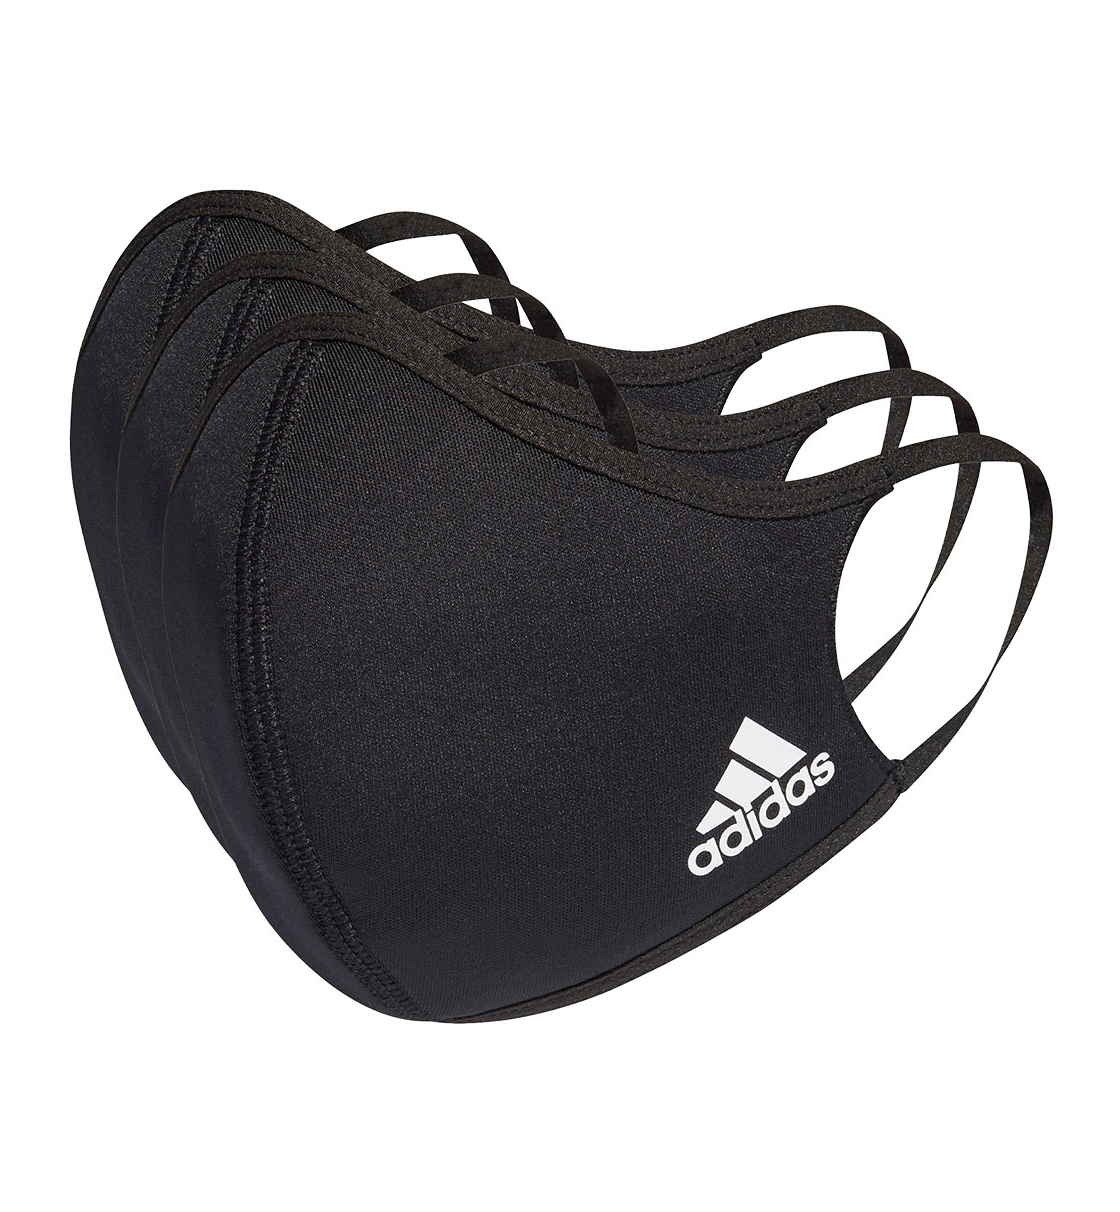 Adidas Ss21 Face Cover Large